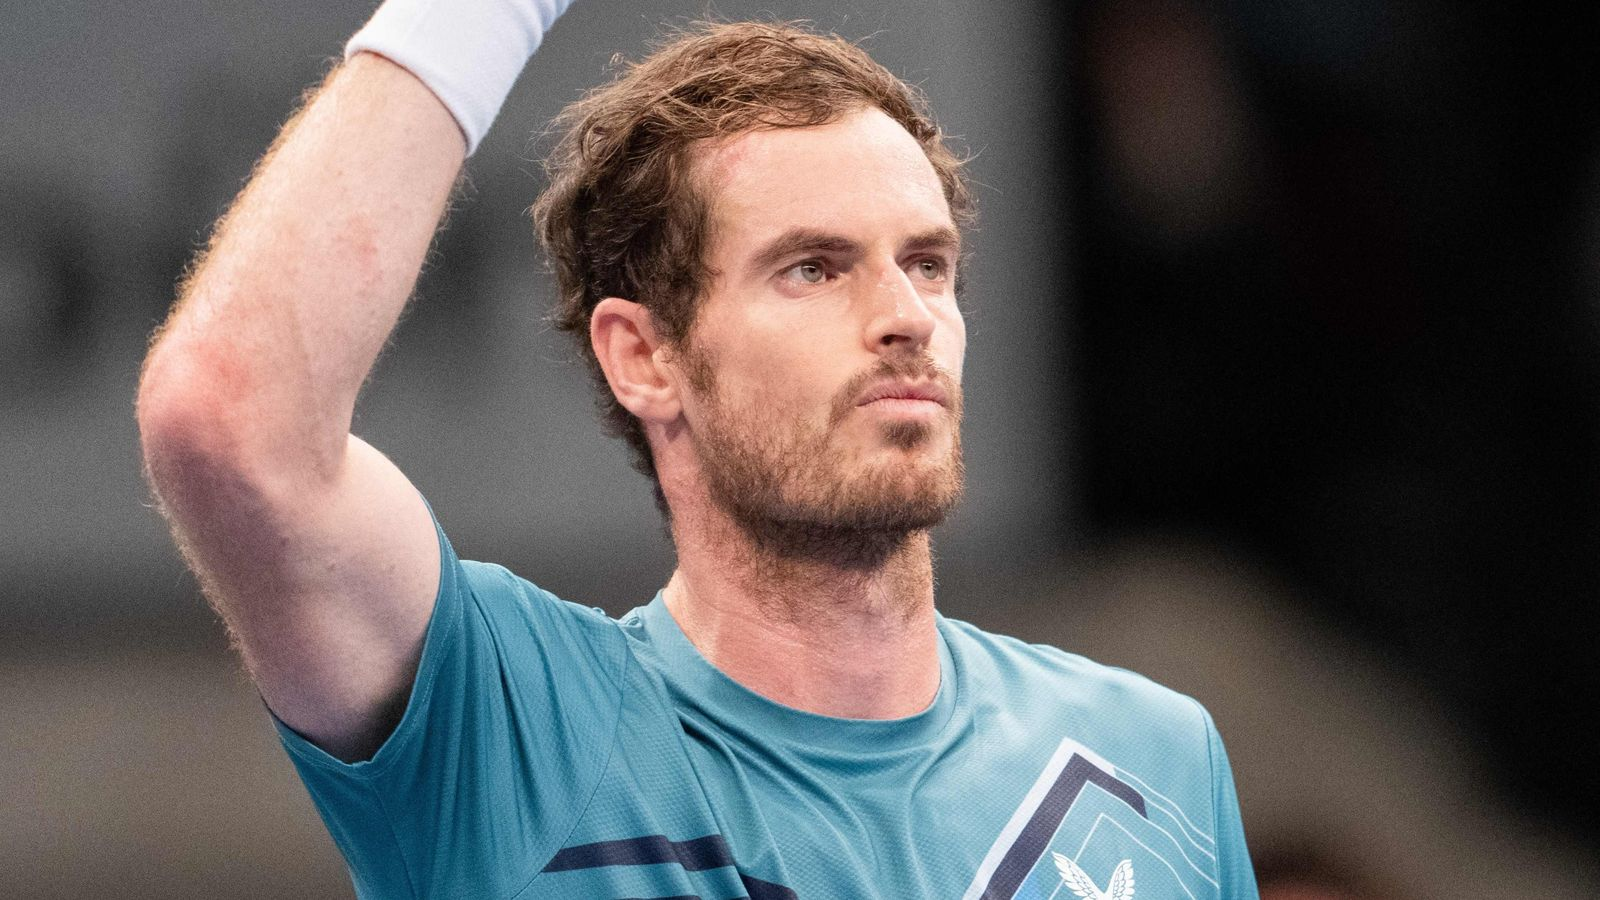 Andy Murray says it's just a matter of time before he makes a breakthrough after his Vienna Open defeat